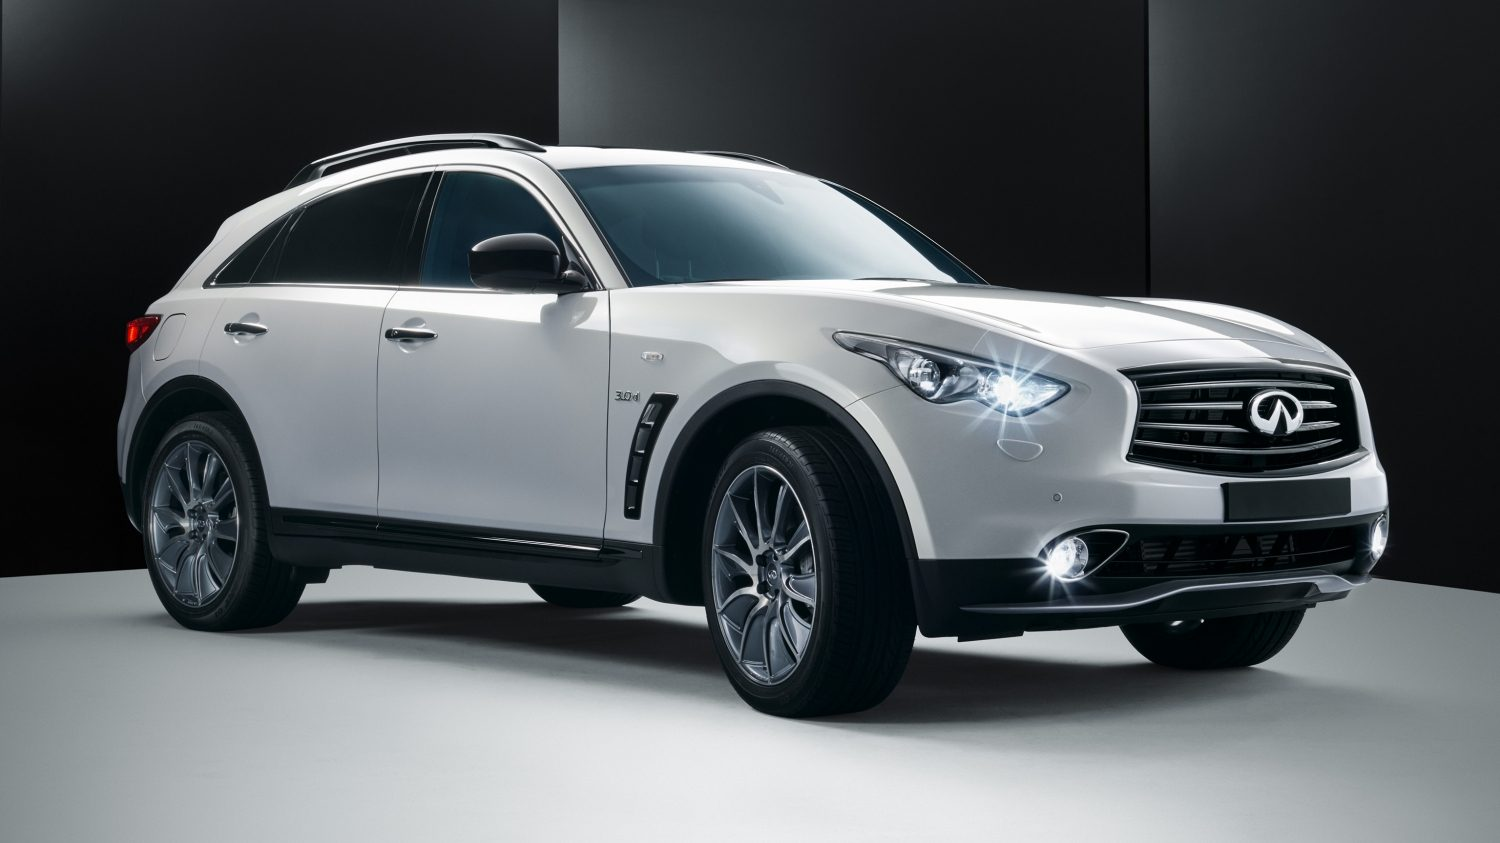 Black Qx70 >> Infiniti QX70 Ultimate Edition - Ultimate Luxury Crossover SUV Car